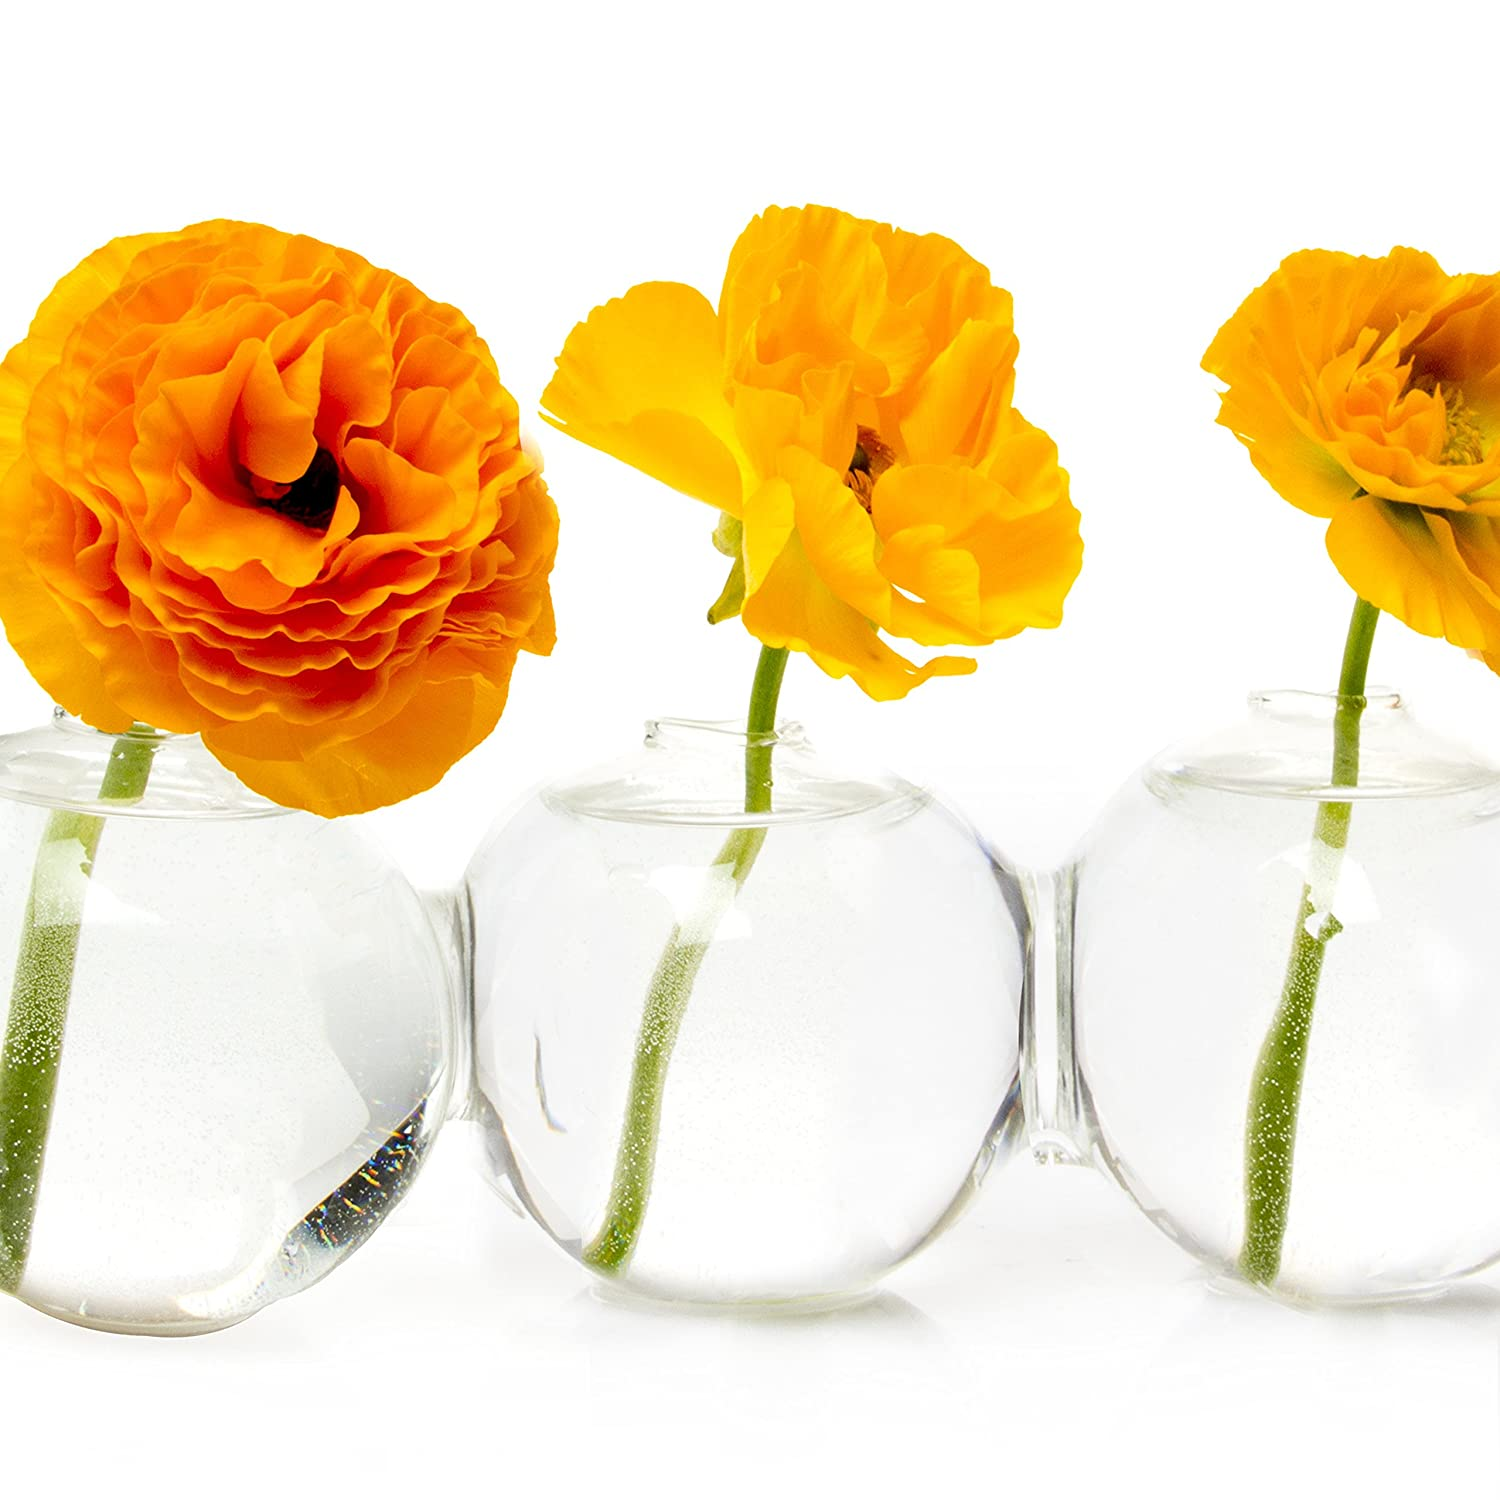 Amazon chive big caterpillar large clear glass bud vase amazon chive big caterpillar large clear glass bud vase for short flowers low sitting unique shape set of 4 glass round connected balls home reviewsmspy